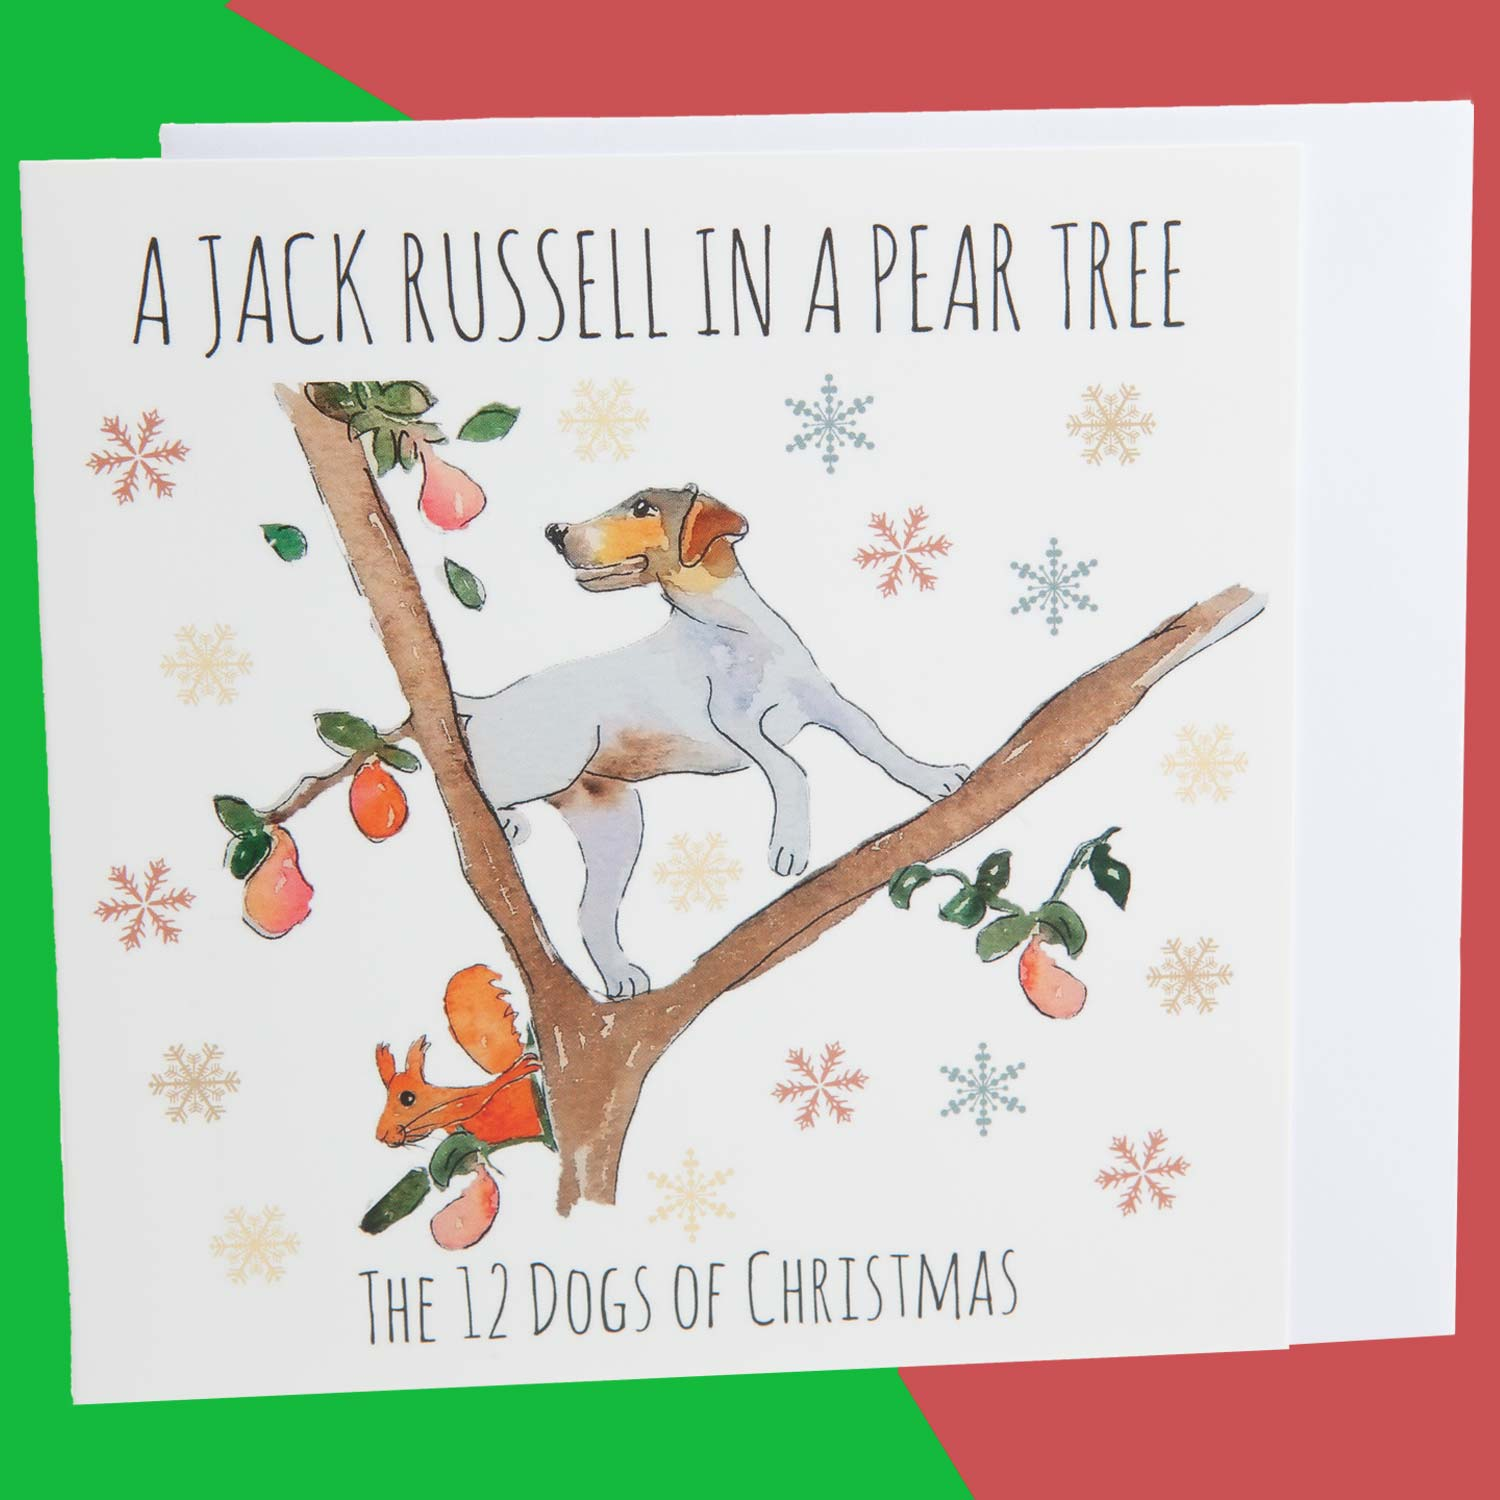 Dog Krazy Gifts - A Jack Russell In A Pear Tree - Part of the 12 Dogs of Christmas card collection available from DogKrazyGifts.co.uk